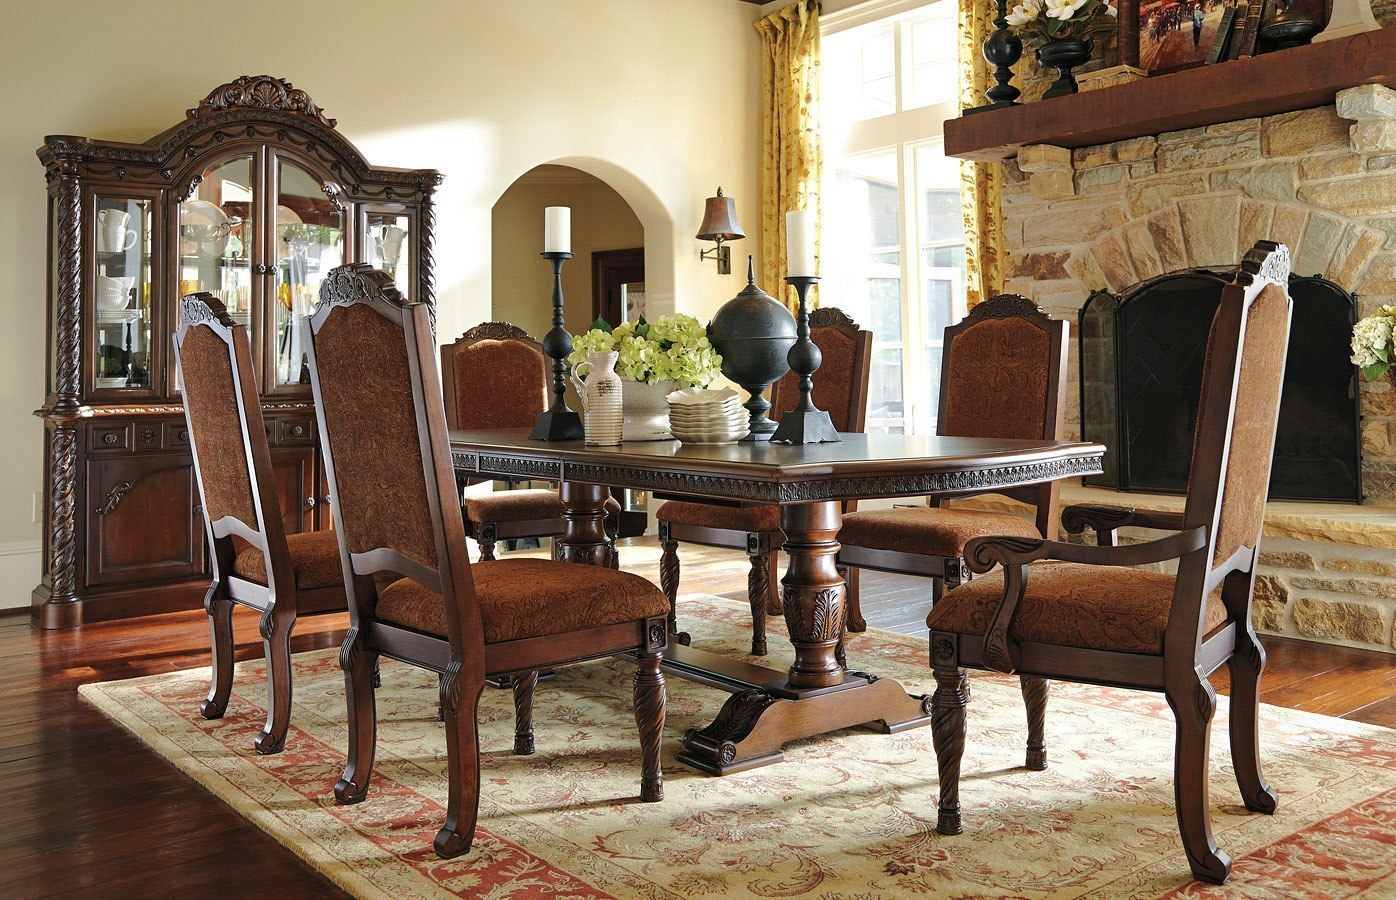 North Shore Pedestal Dining Room Set w/ Upholstered Chairs